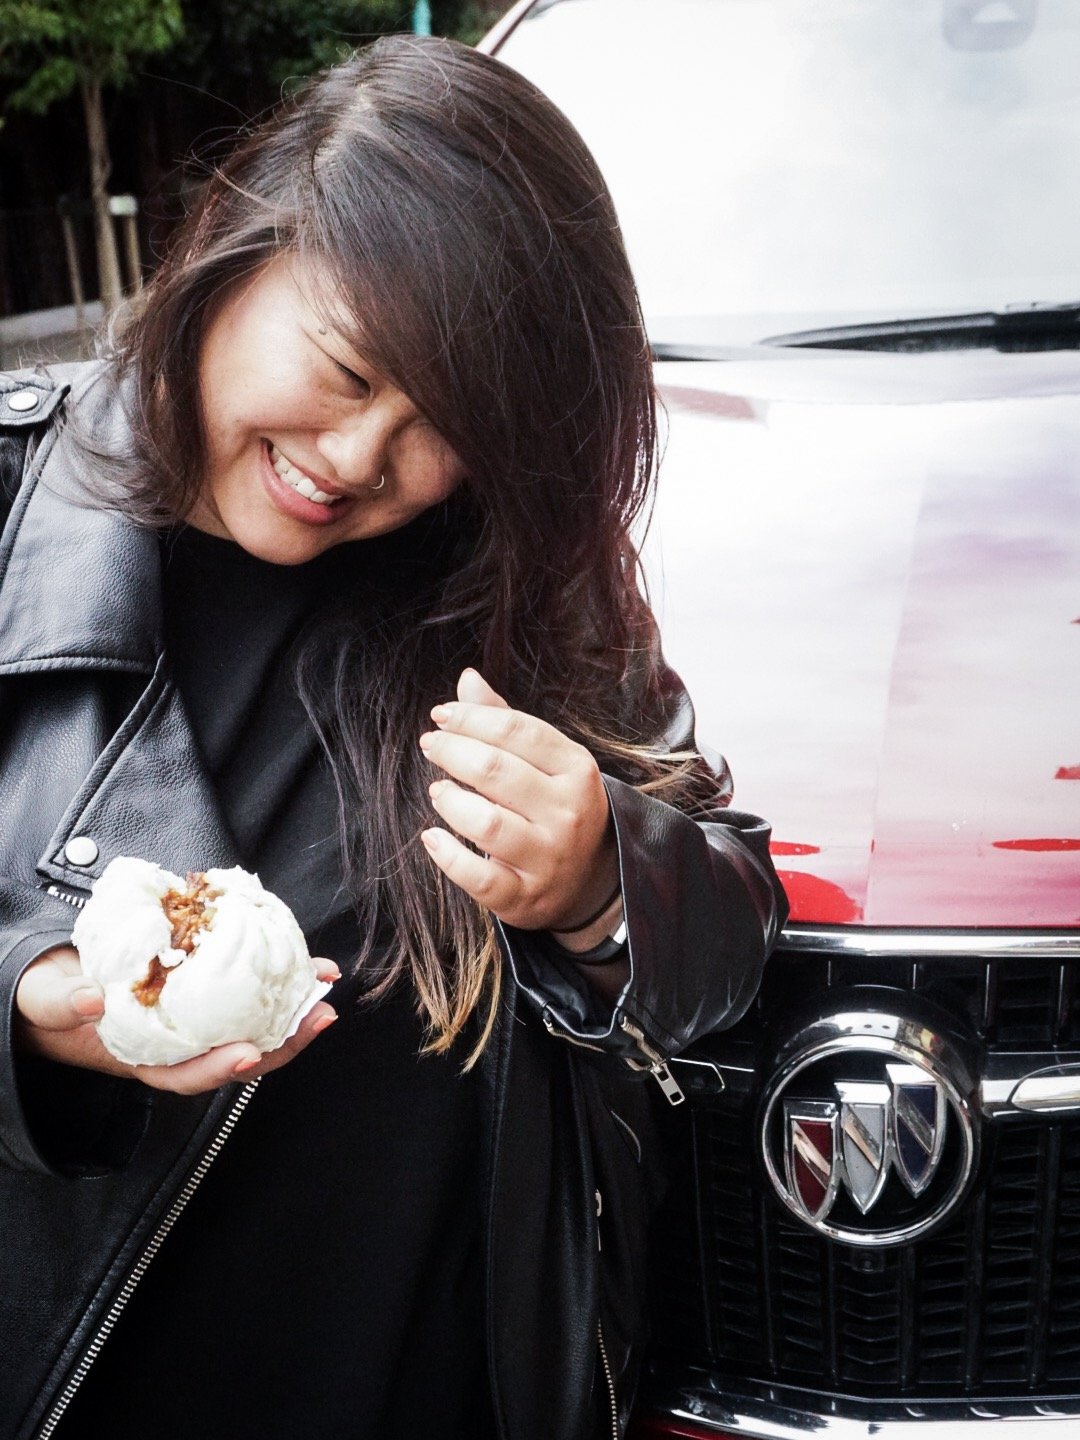 In front of Buick Enclave 2018 with Pork Bao